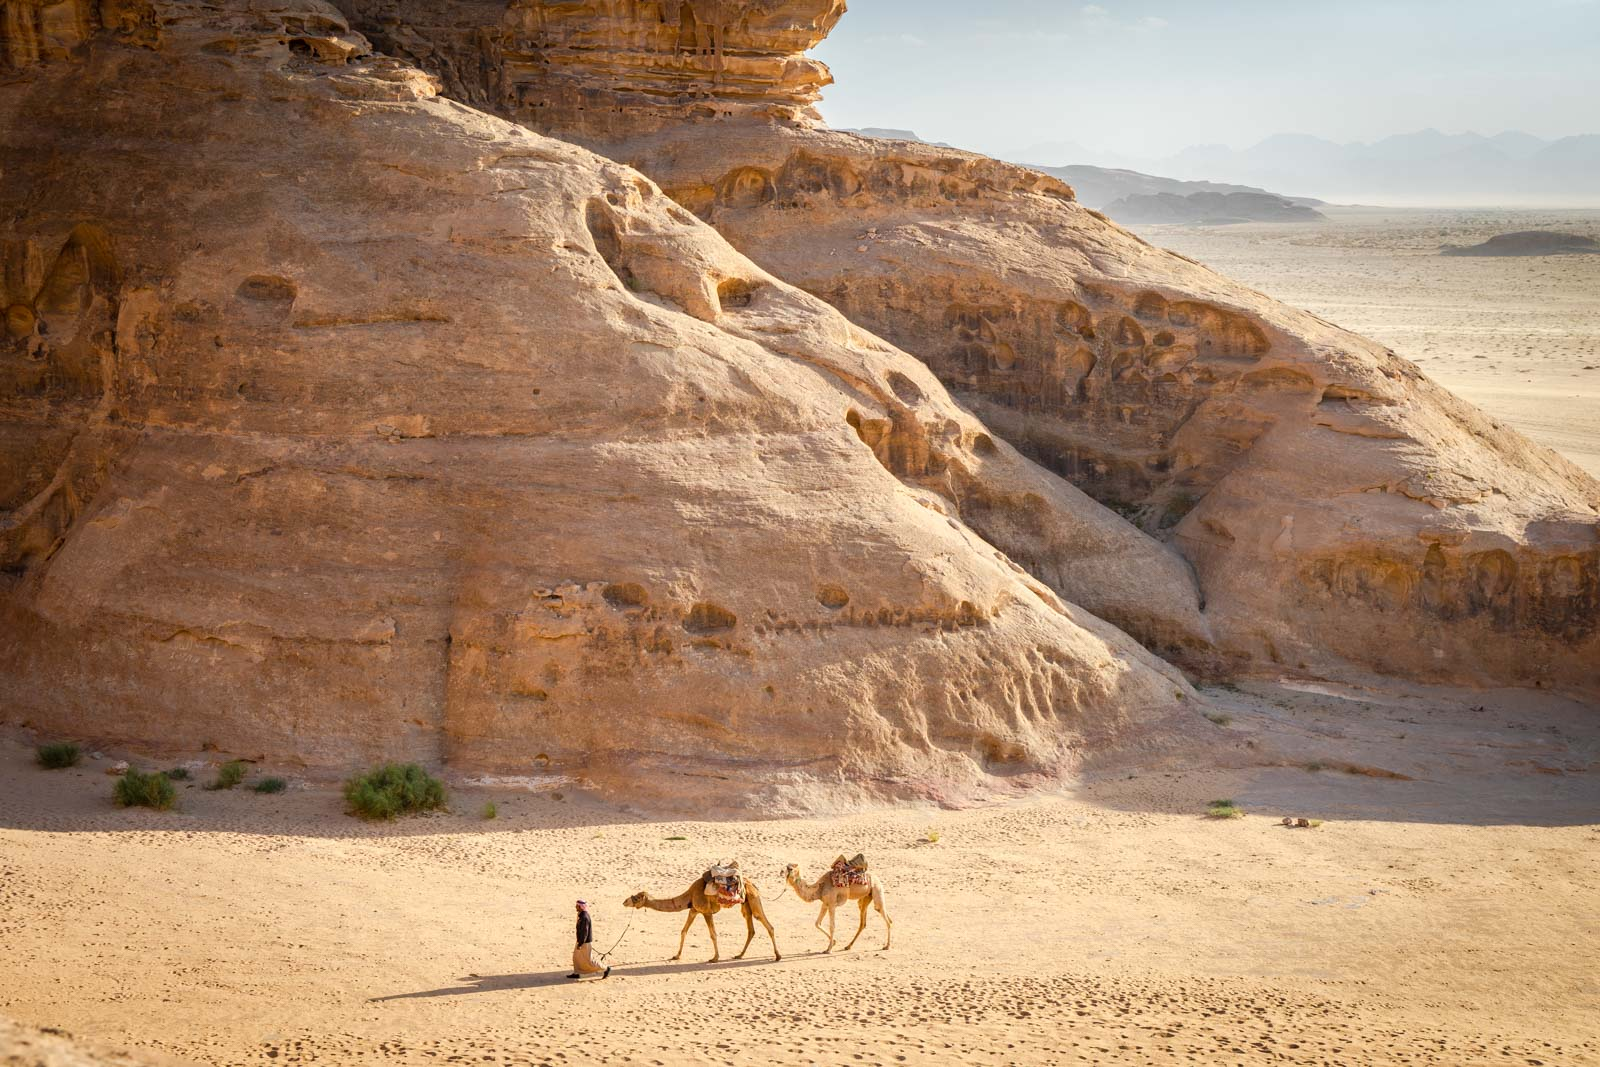 Wadi Rum photos, Jordan desert, Jeep tour